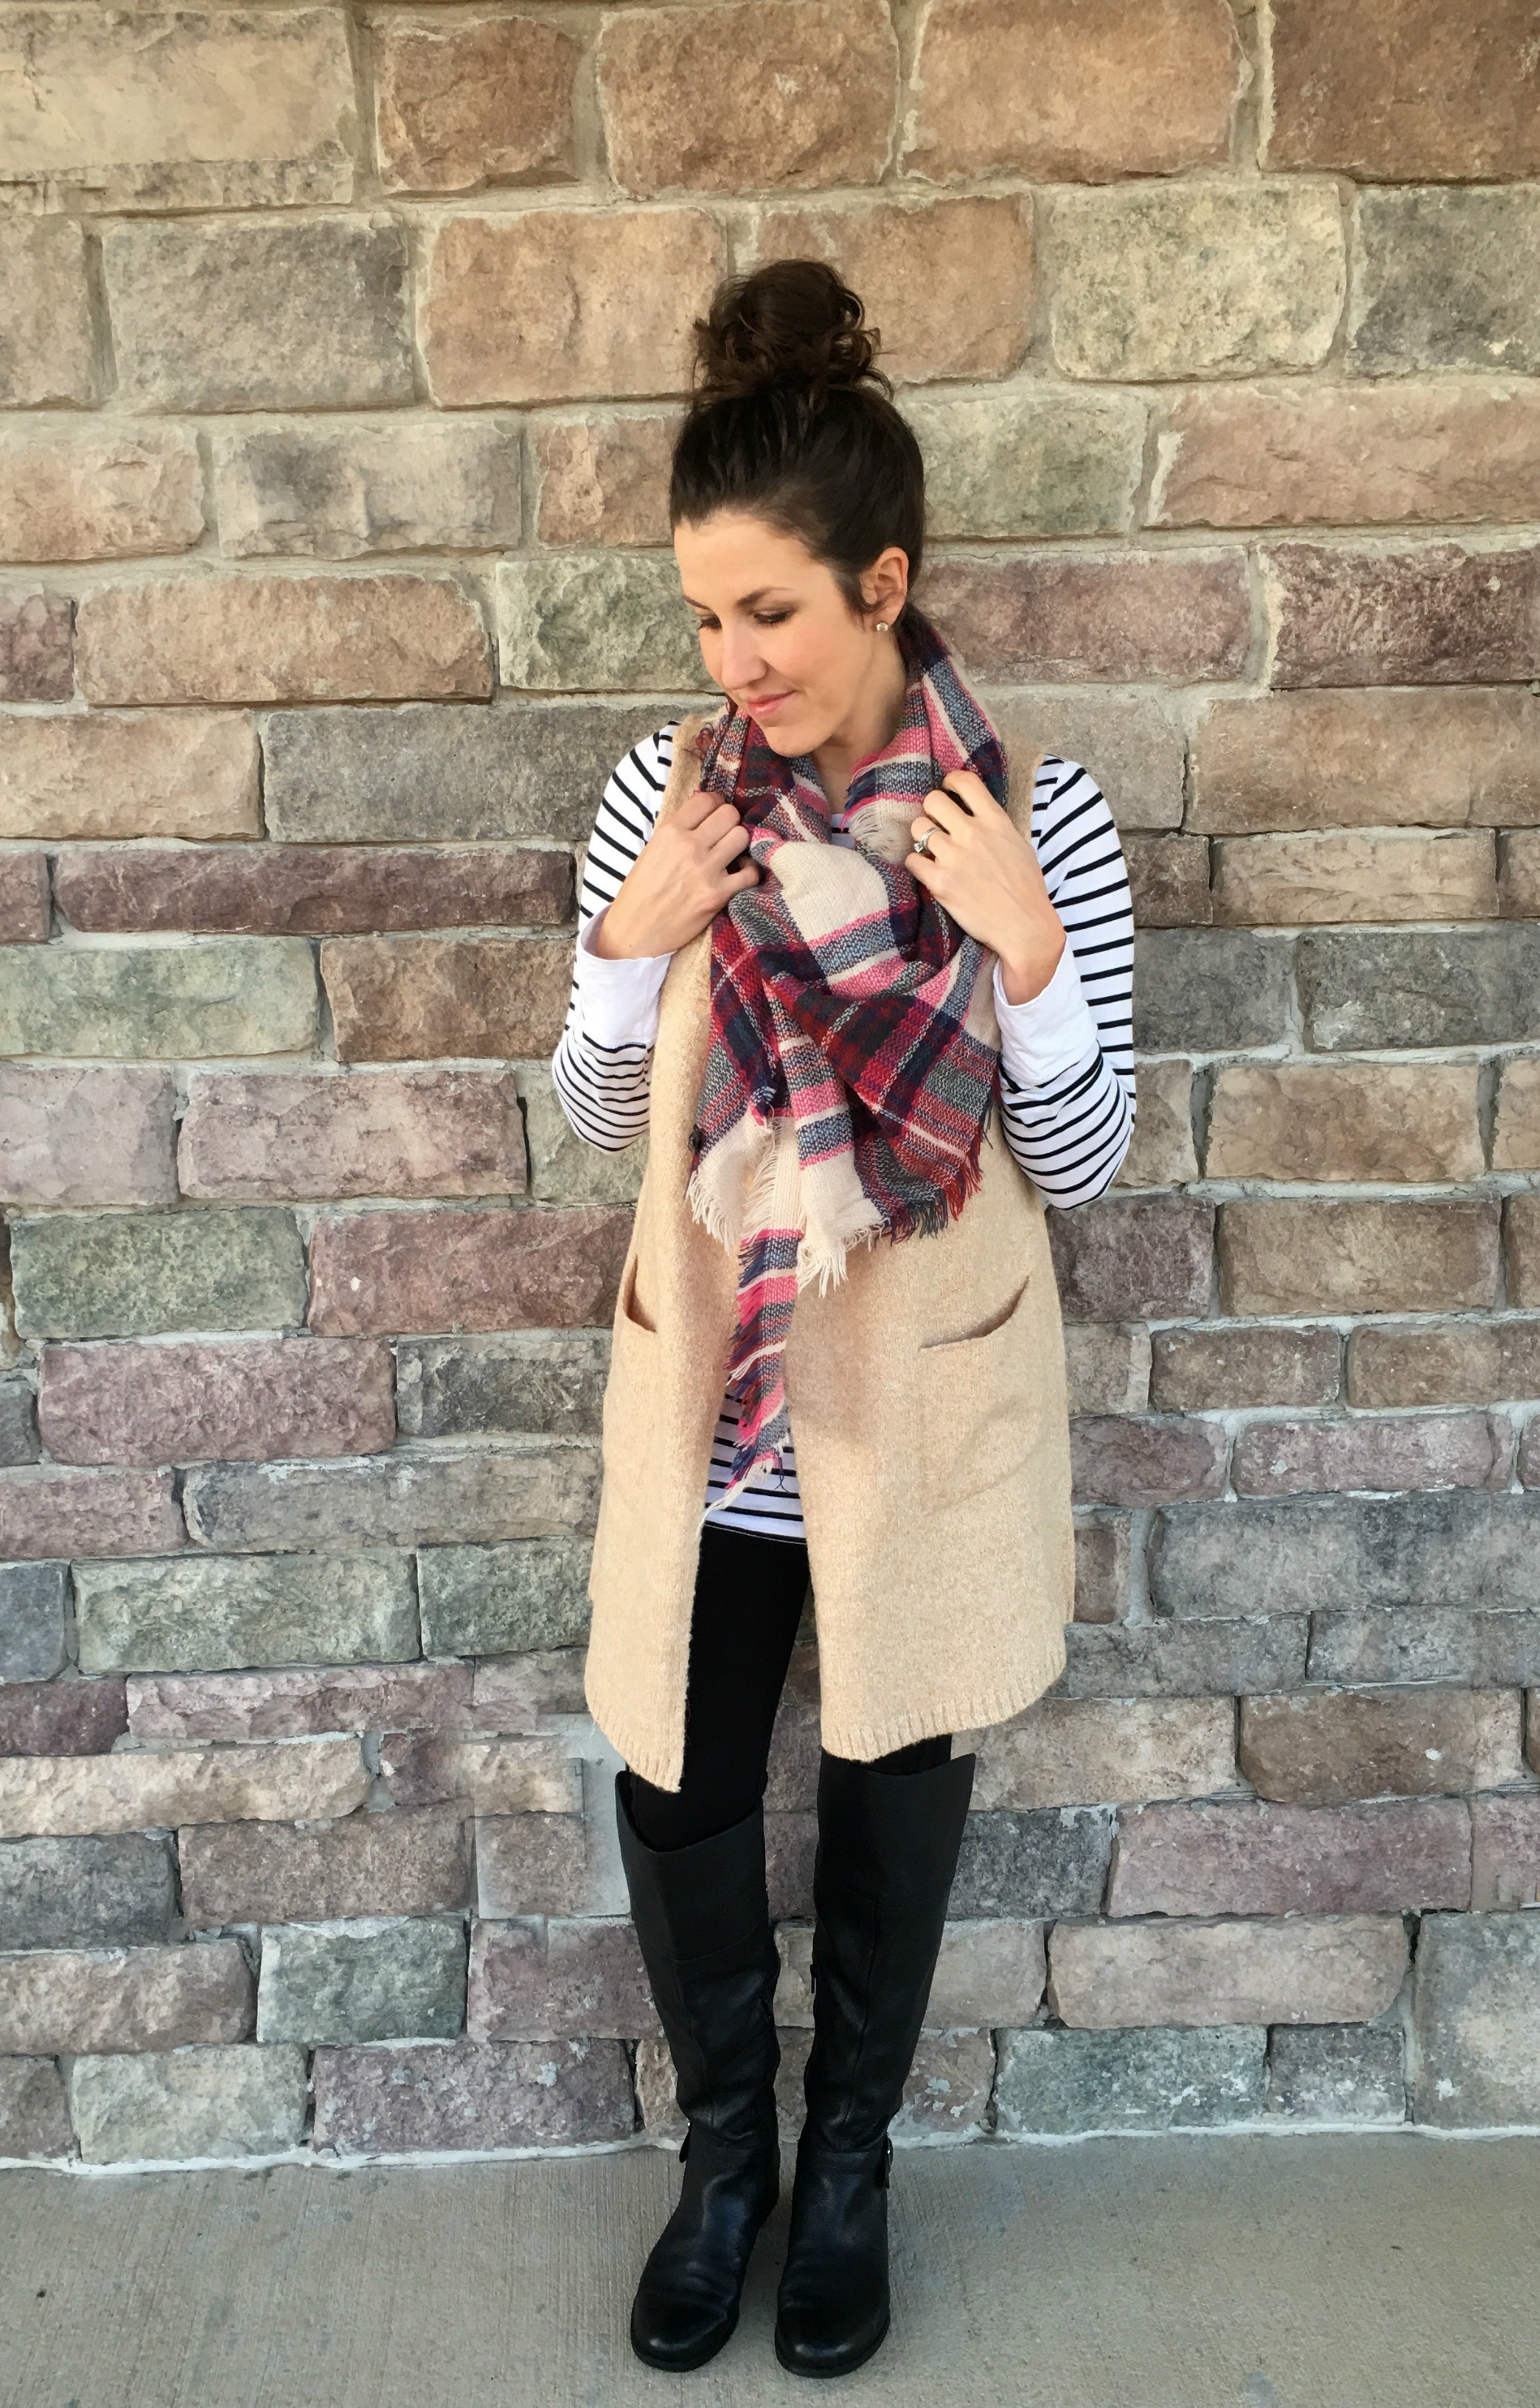 c4f87a6a0007e4 5 Ways to Style a Striped Shirt - momma in flip flops